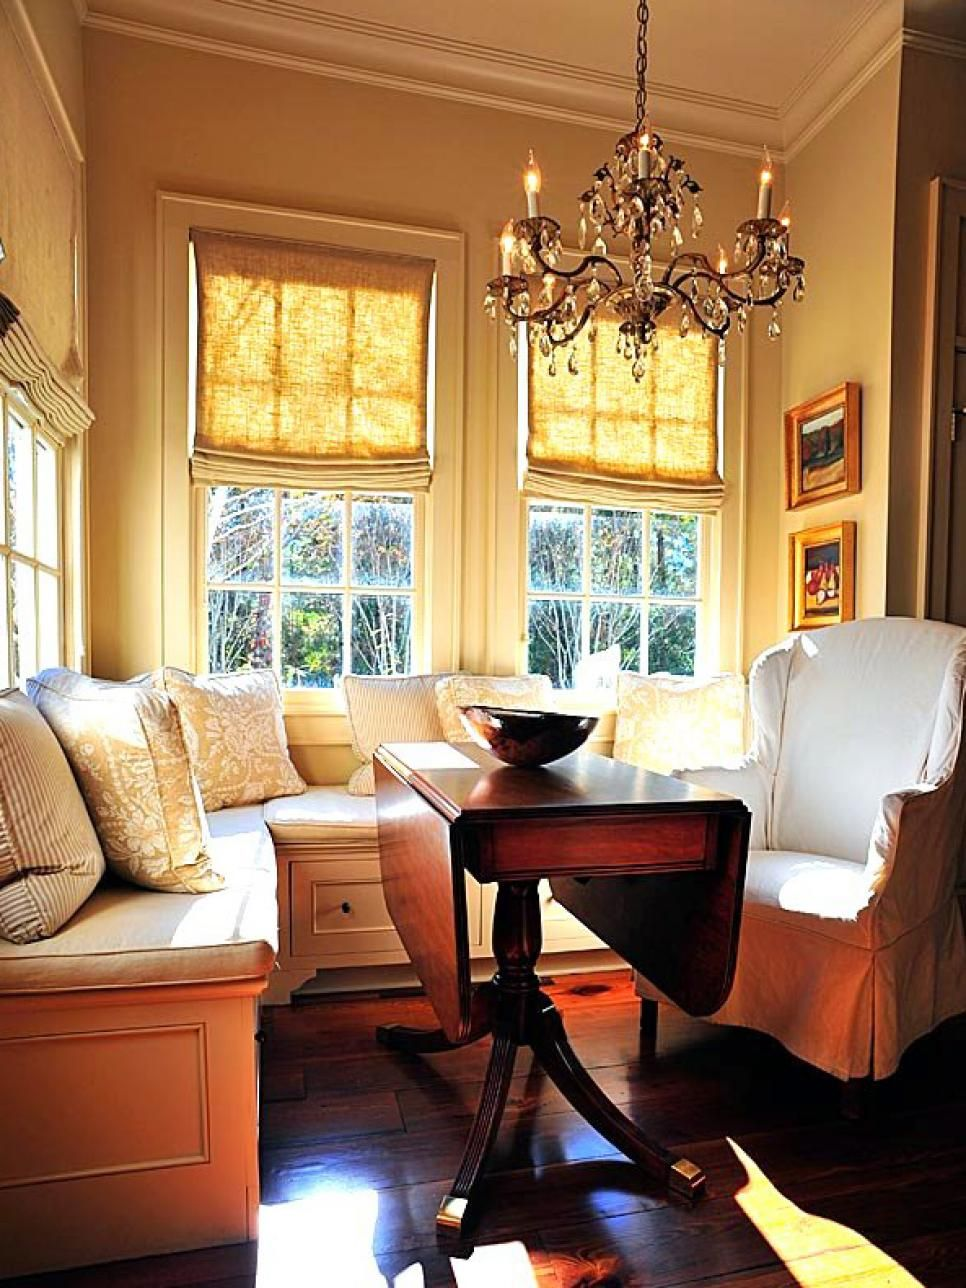 15 Dining Room Decorating Ideas | Banquette seating, Wingback chairs ...